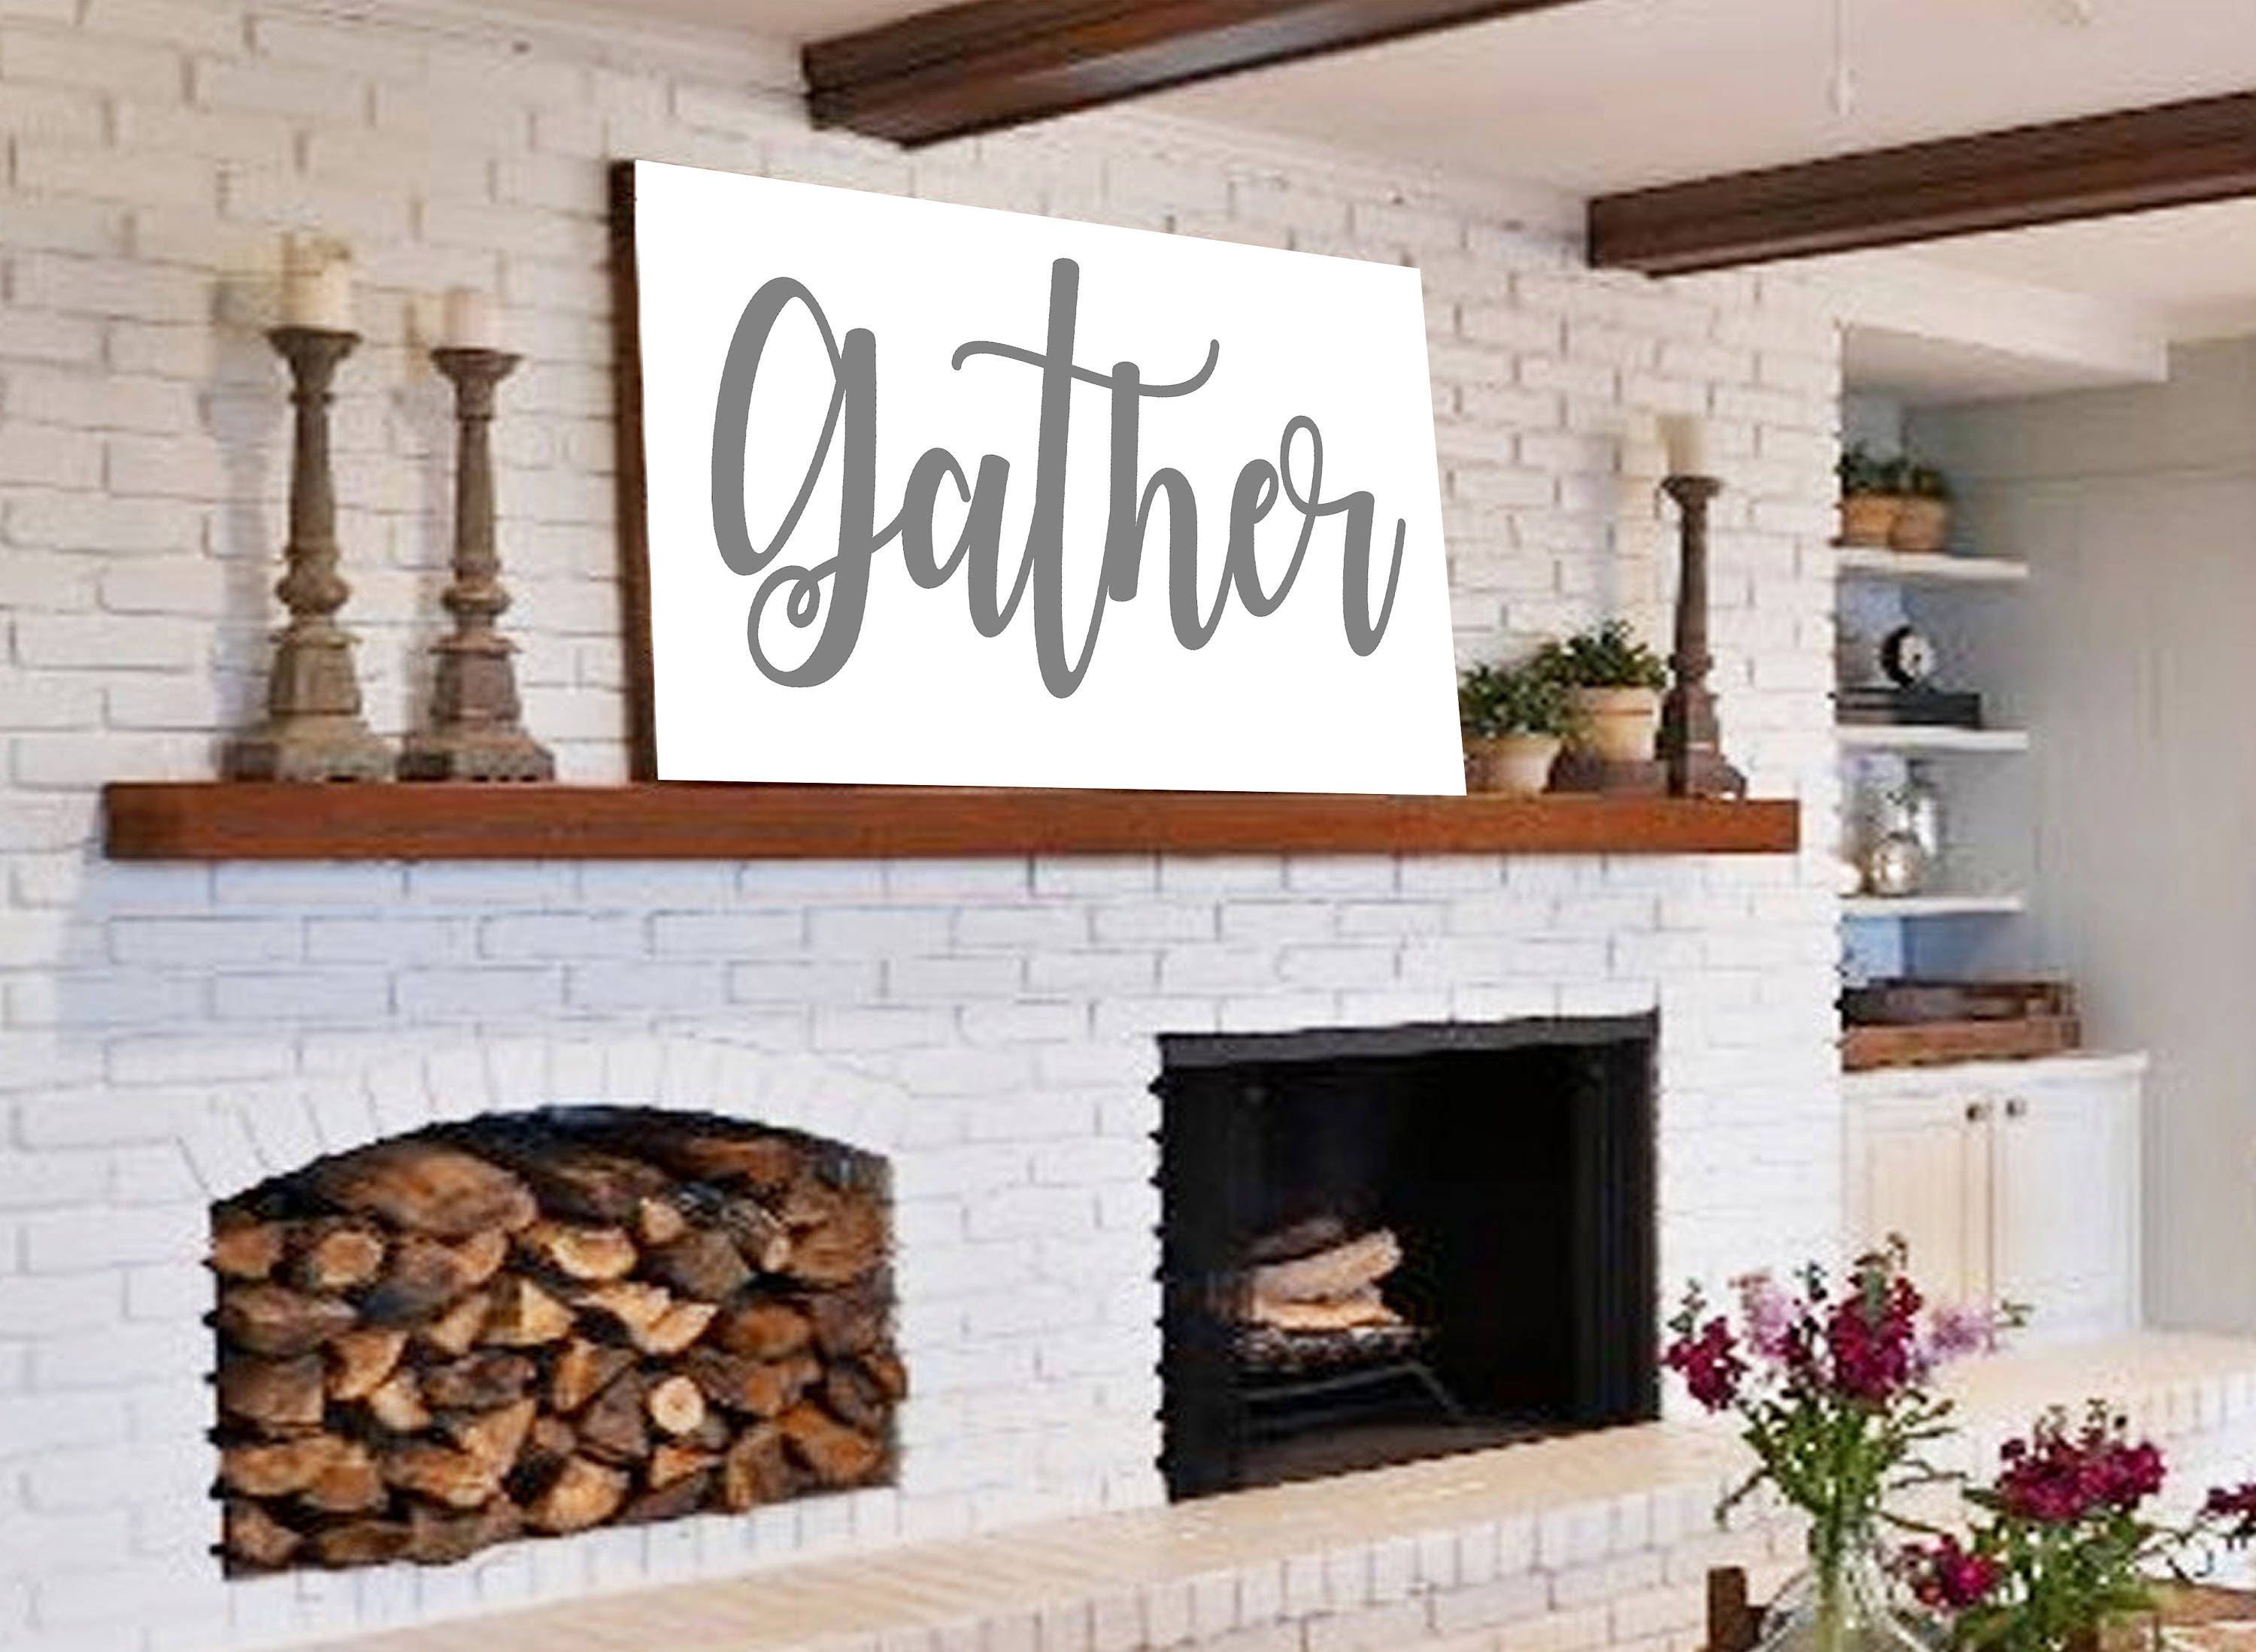 Co color art printing anchorage alaska - Gather Sign Gift For Her Wall Art Rustic Home Decor Shiplap Sign Home Decor Farmhouse Decor Sign Large Gather Wood Sign Gather Art Print